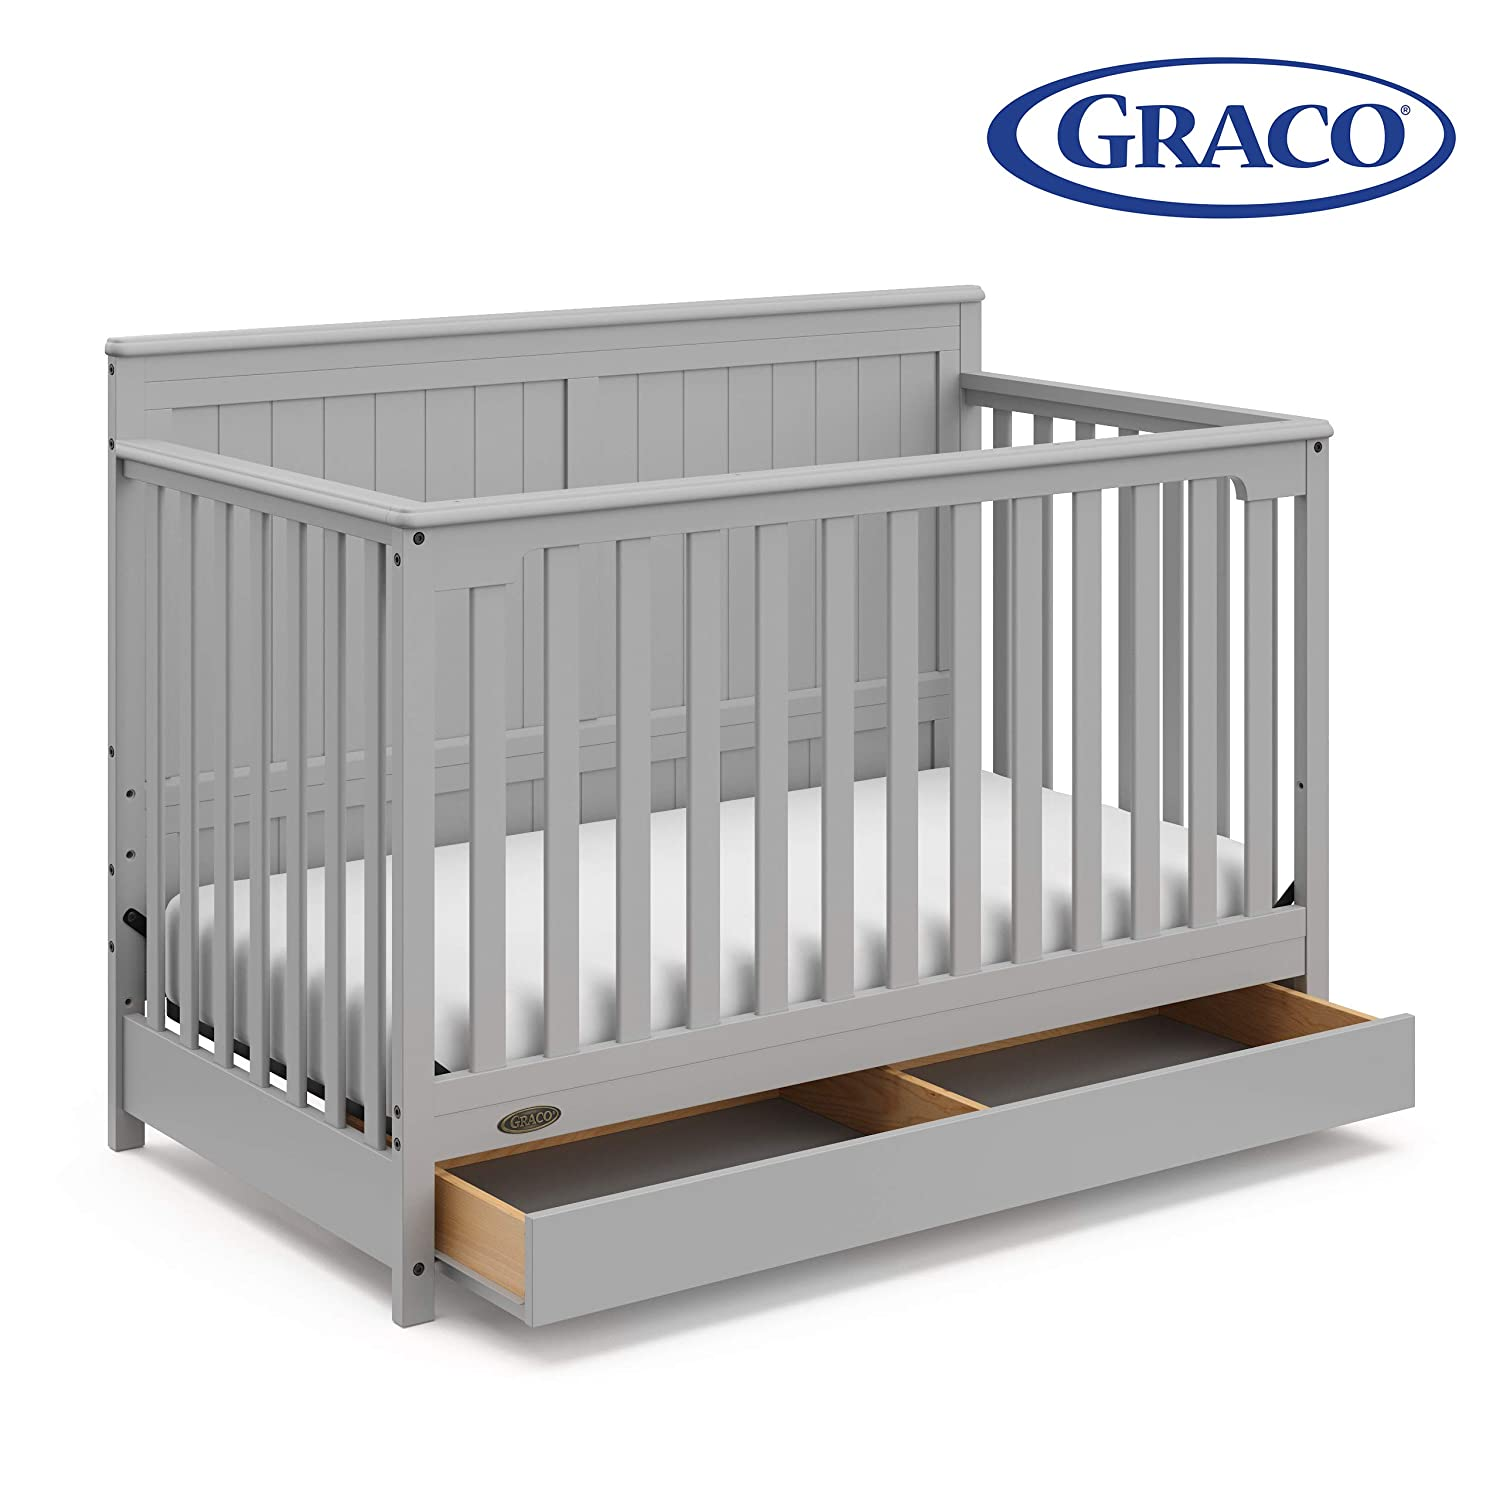 Graco Hadley 4-in-1 Convertible Crib with Drawer,Pebble Gray,Easily  Converts to Toddler Bed Day Bed or Full Bed,Three Position Adjustable  Height ...